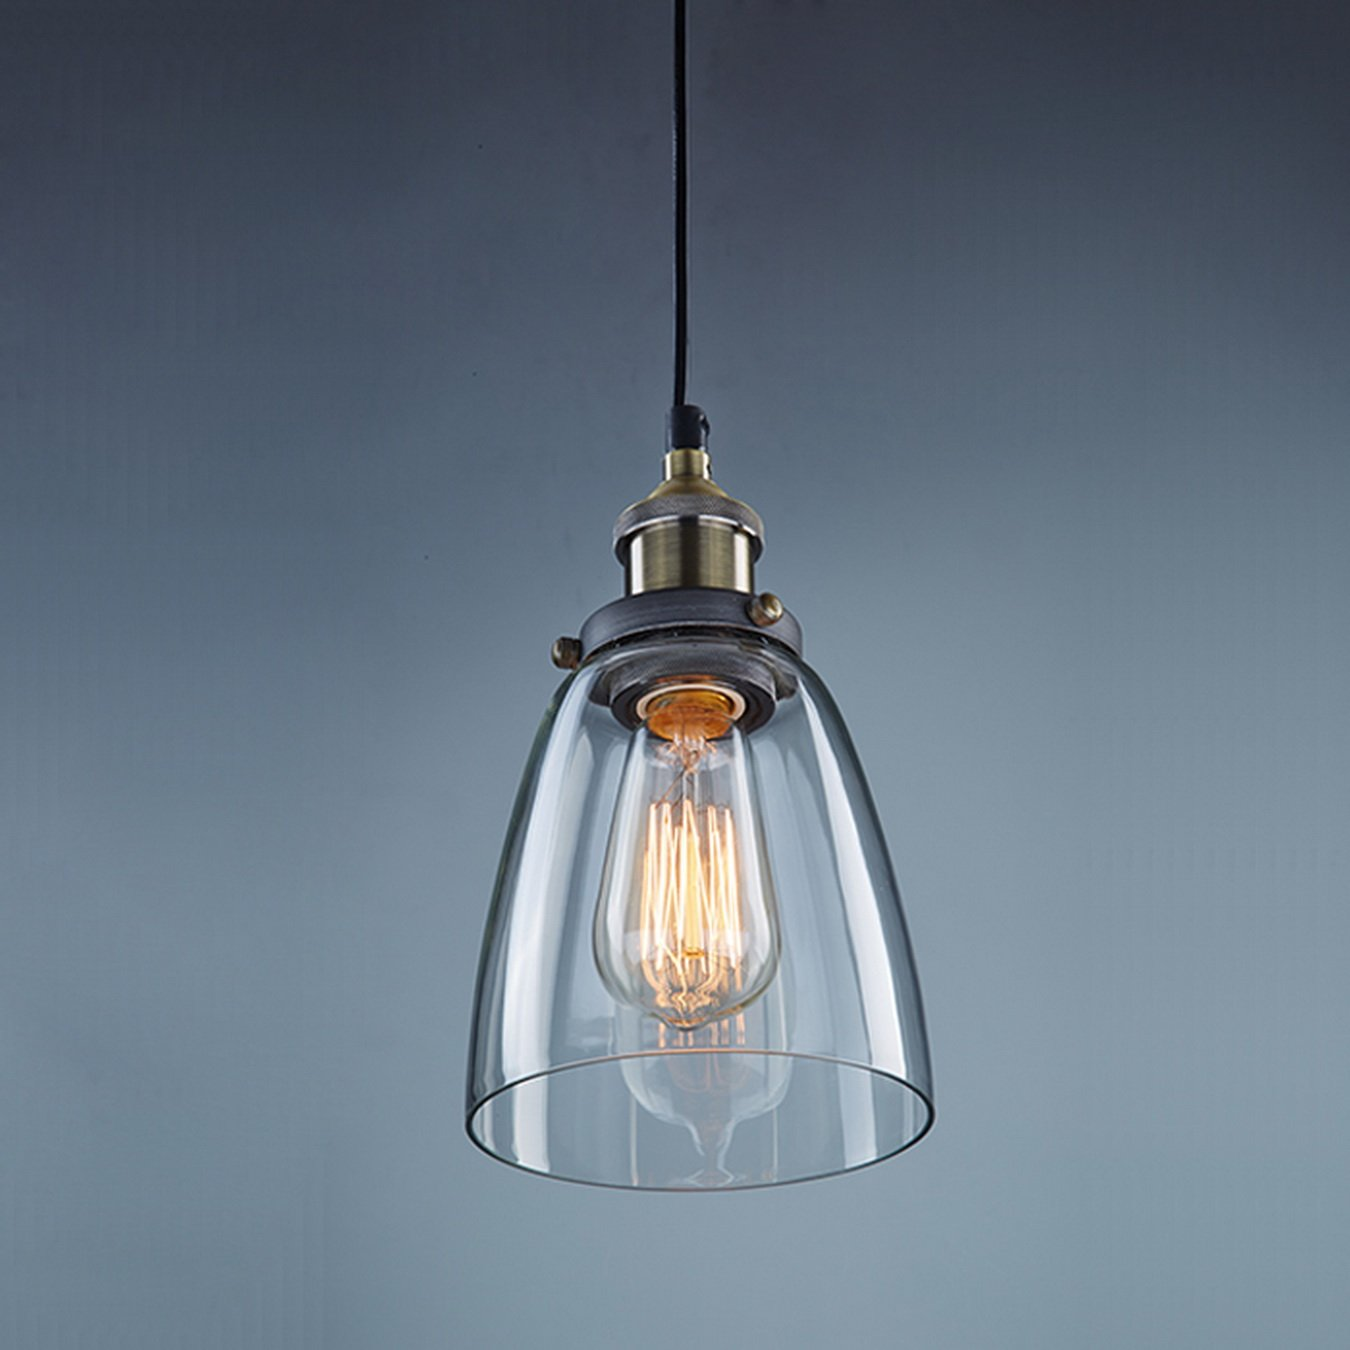 pendant ceiling design edison lights spider light adjustable multiple bulbs industrial